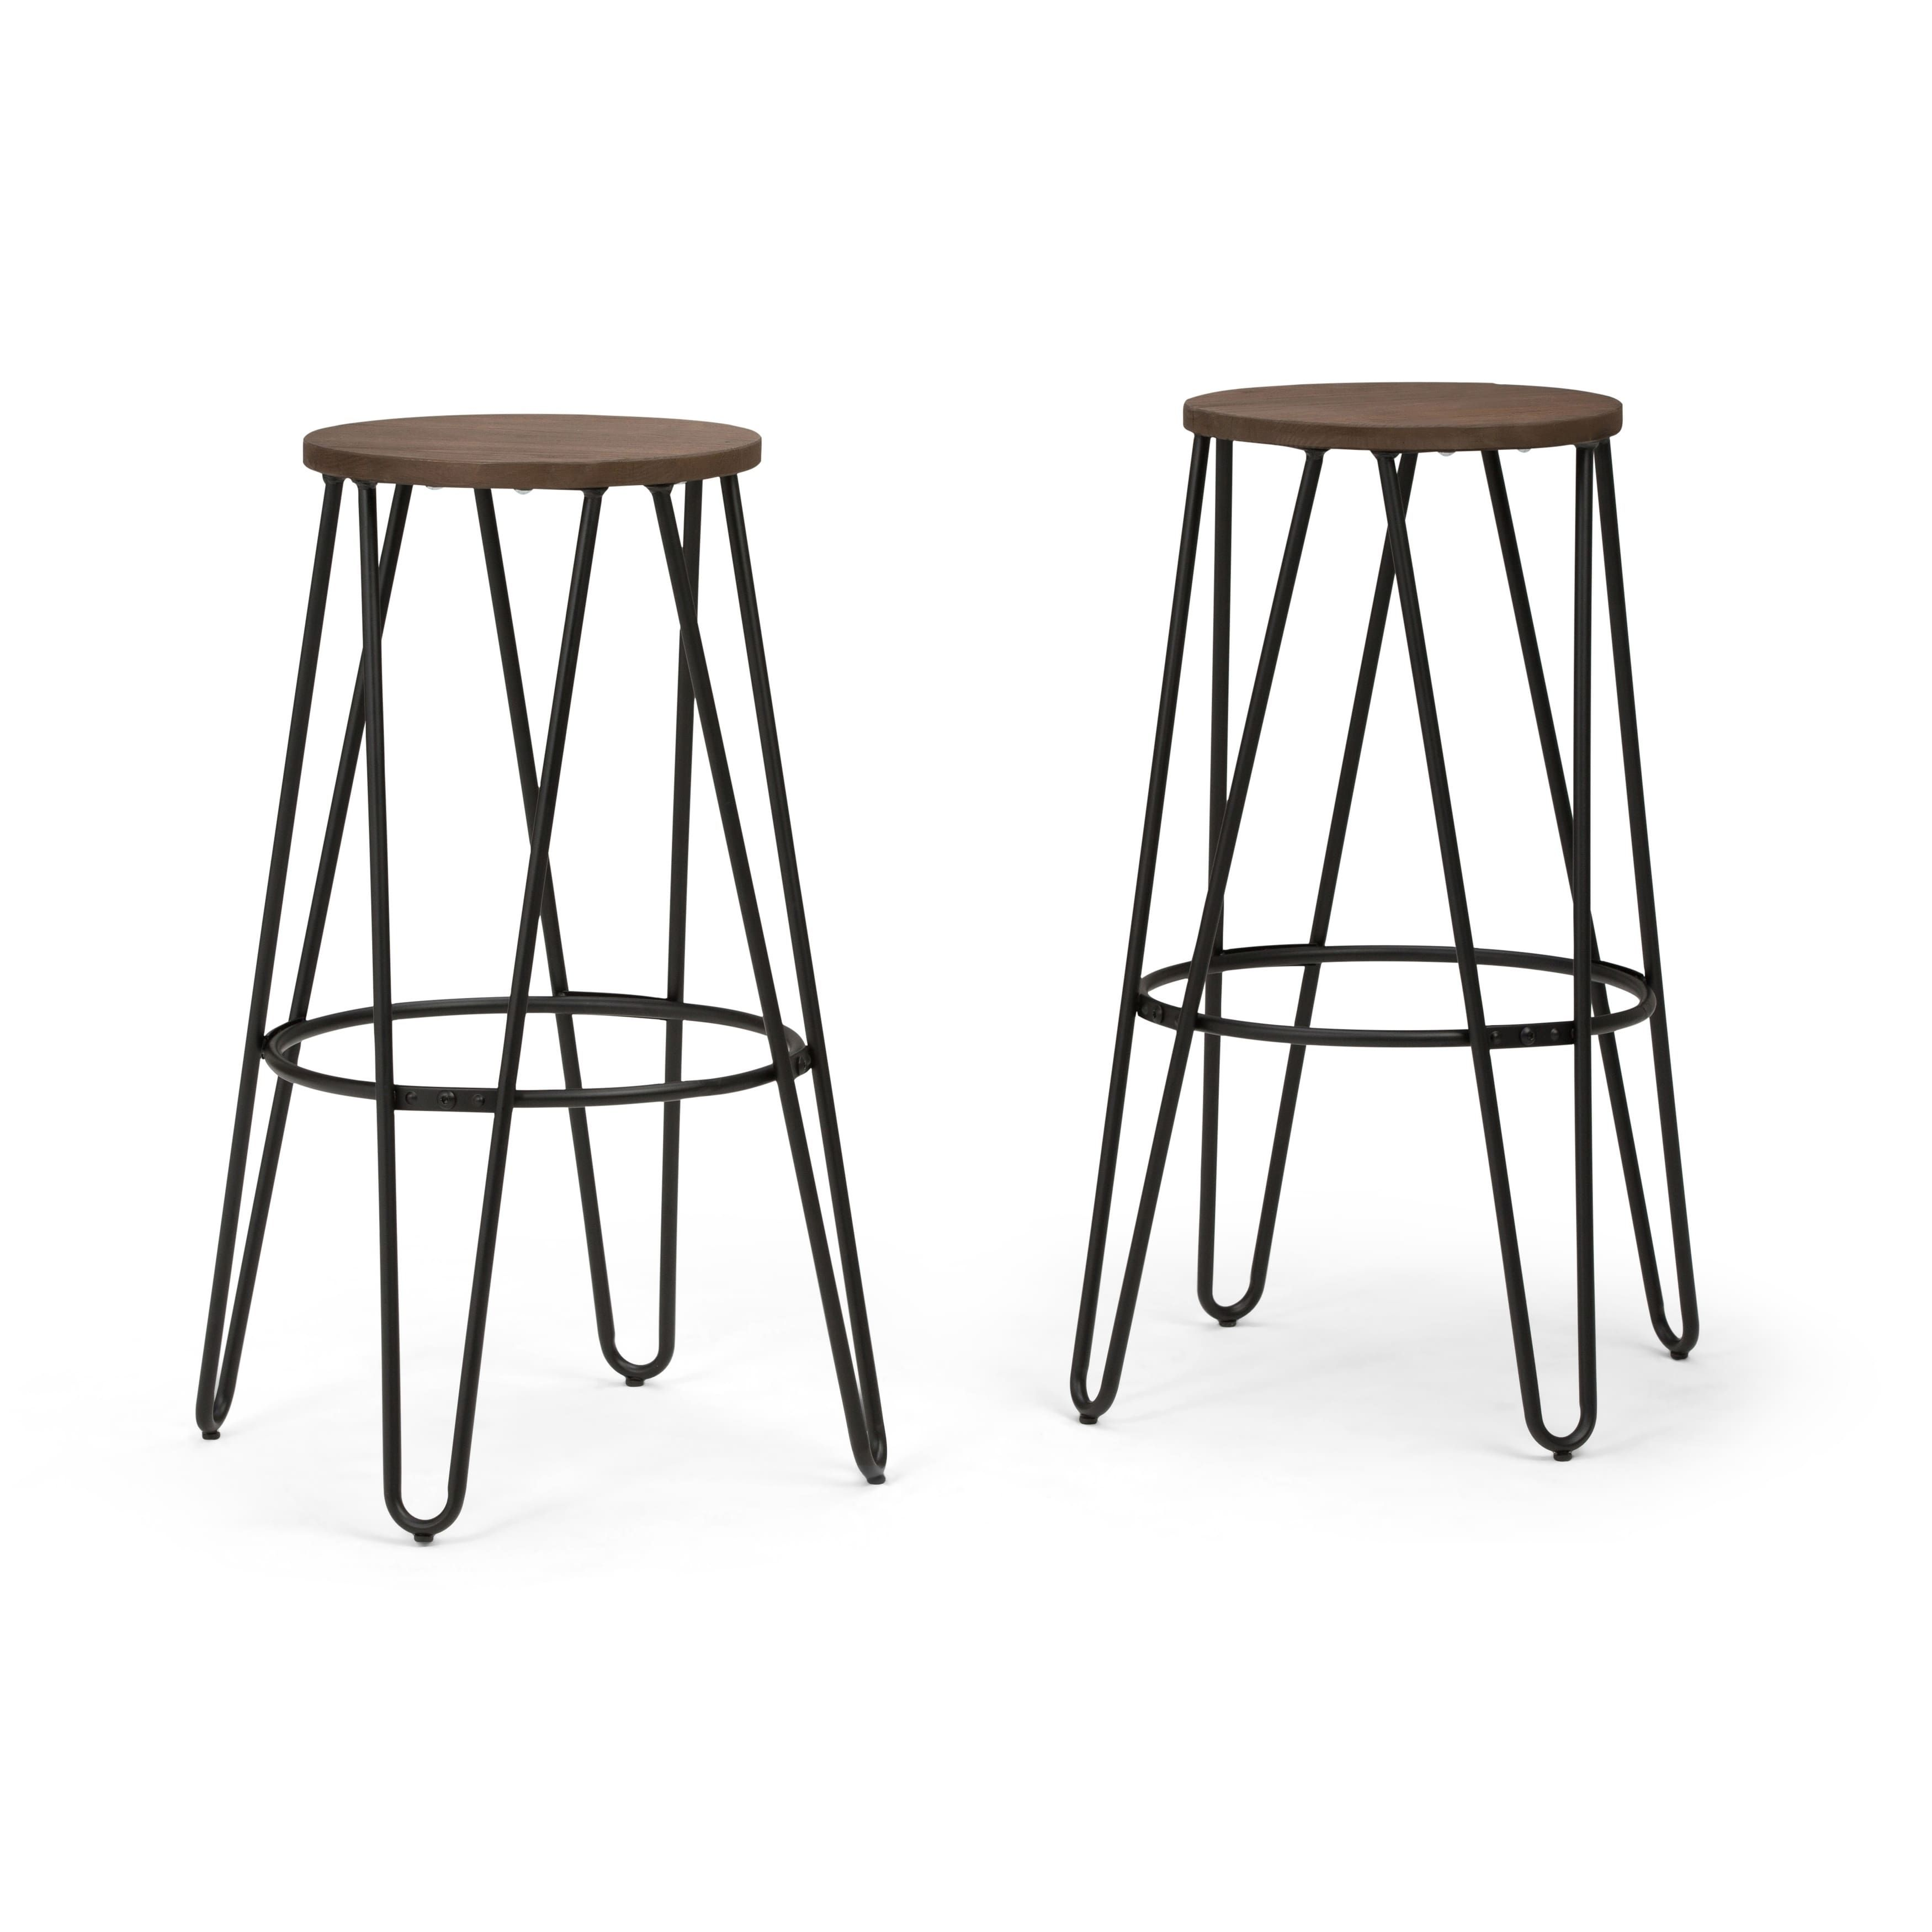 Wyndenhall Kendall Industrial Metal 30 Inch Bar Stool With Solid Wood Seat In Black Cocoa Brown 21 W X 21 D X 30 H Metal Wood Bar Stool Bar Stools Metal Bar Stools